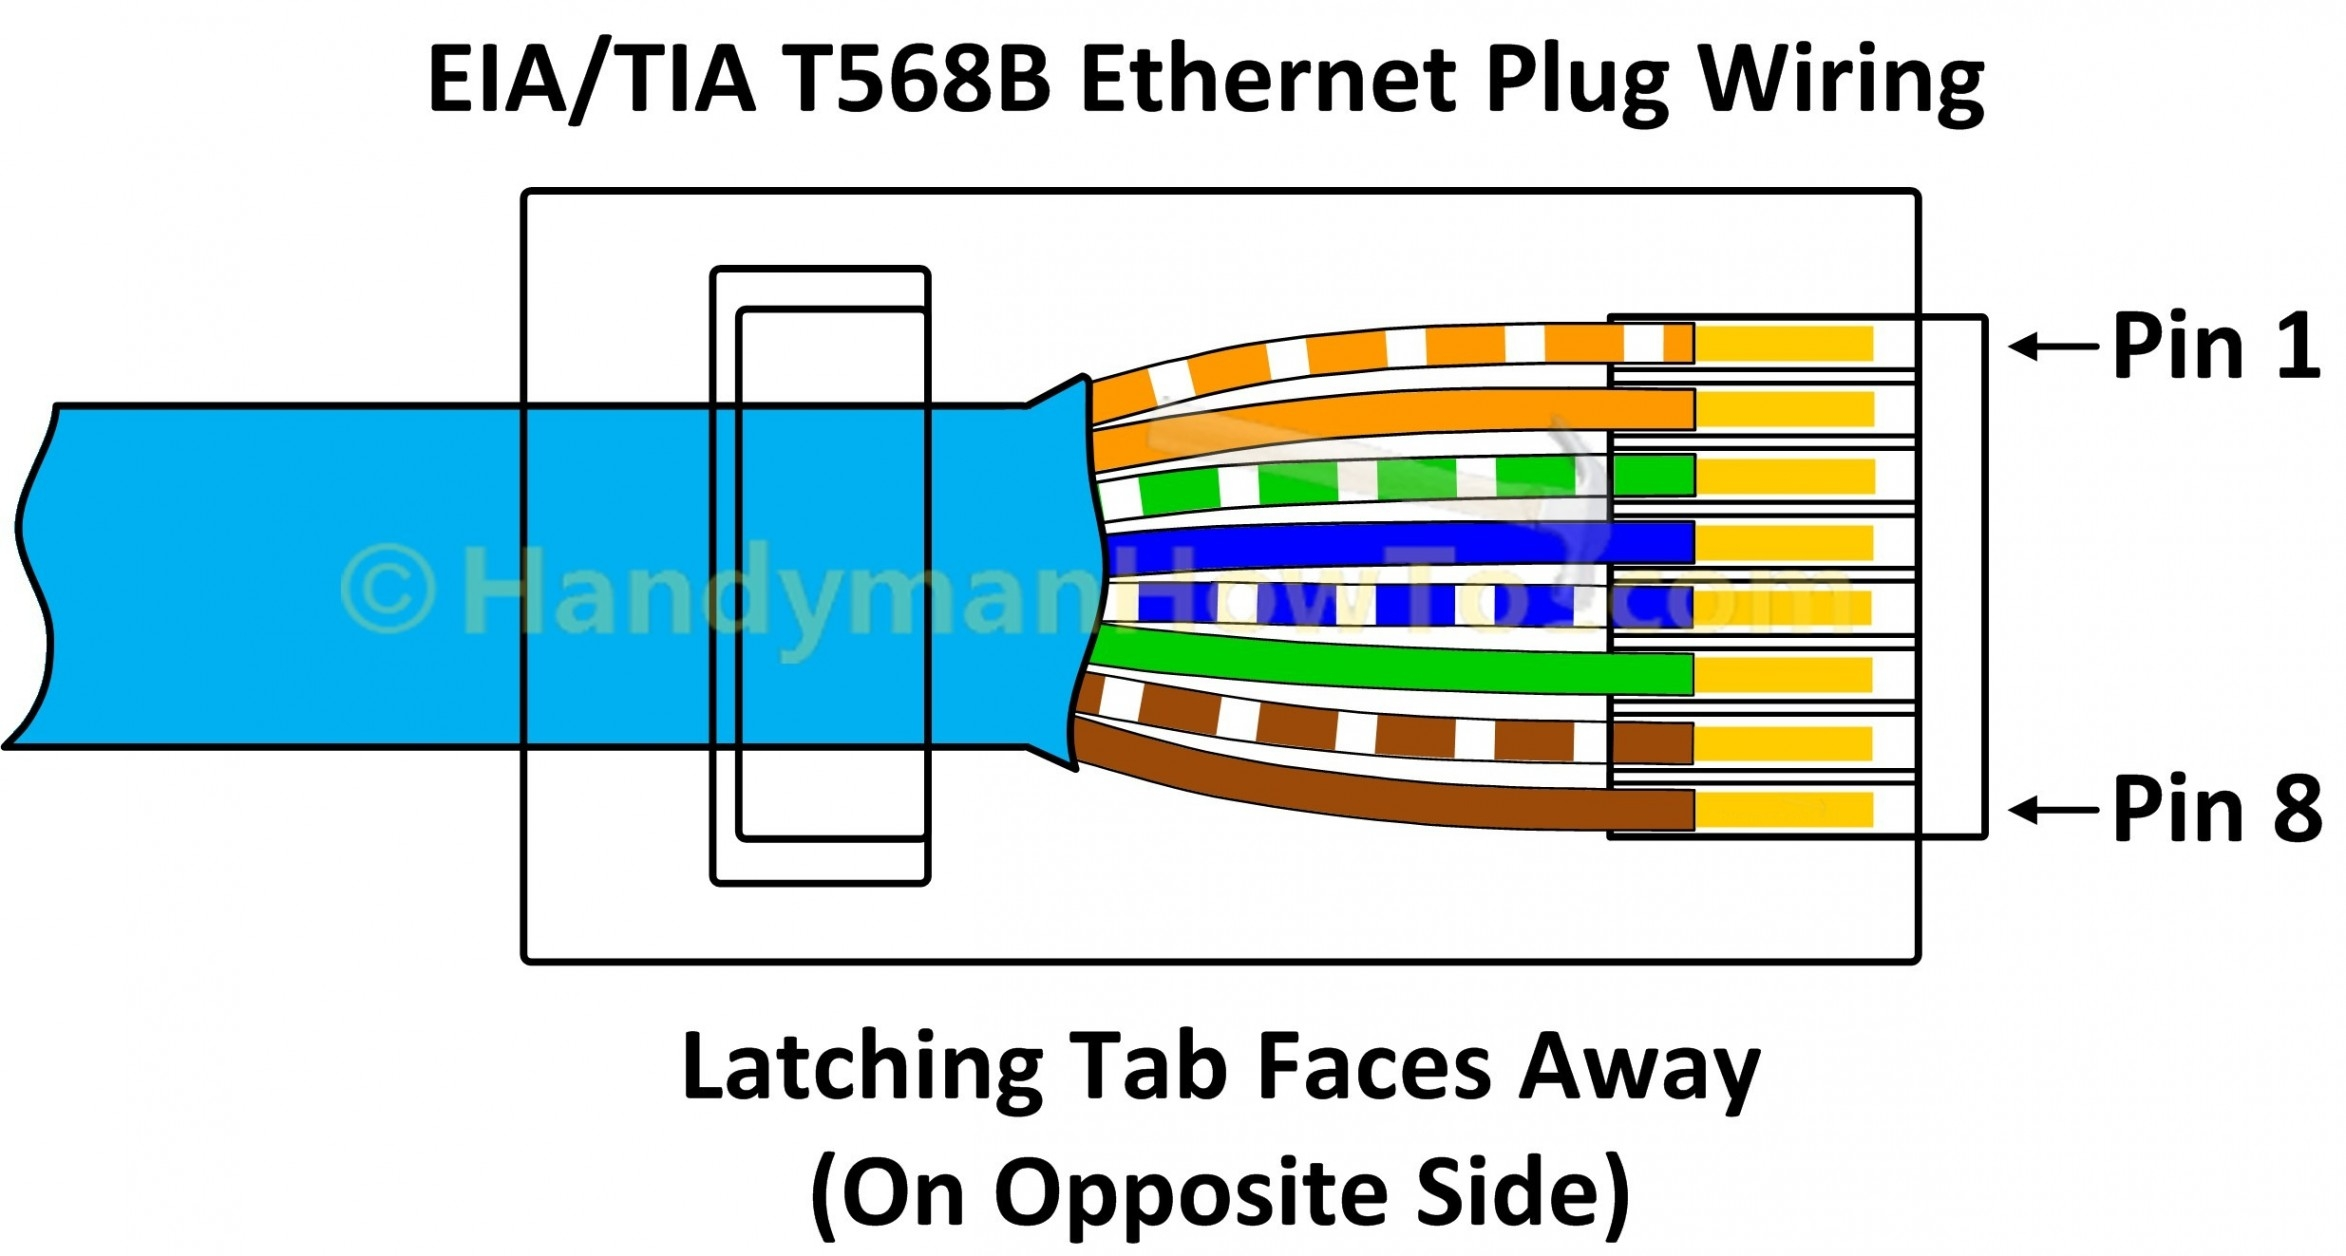 ethernet cable wiring diagram cat5e free wiring diagram. Black Bedroom Furniture Sets. Home Design Ideas